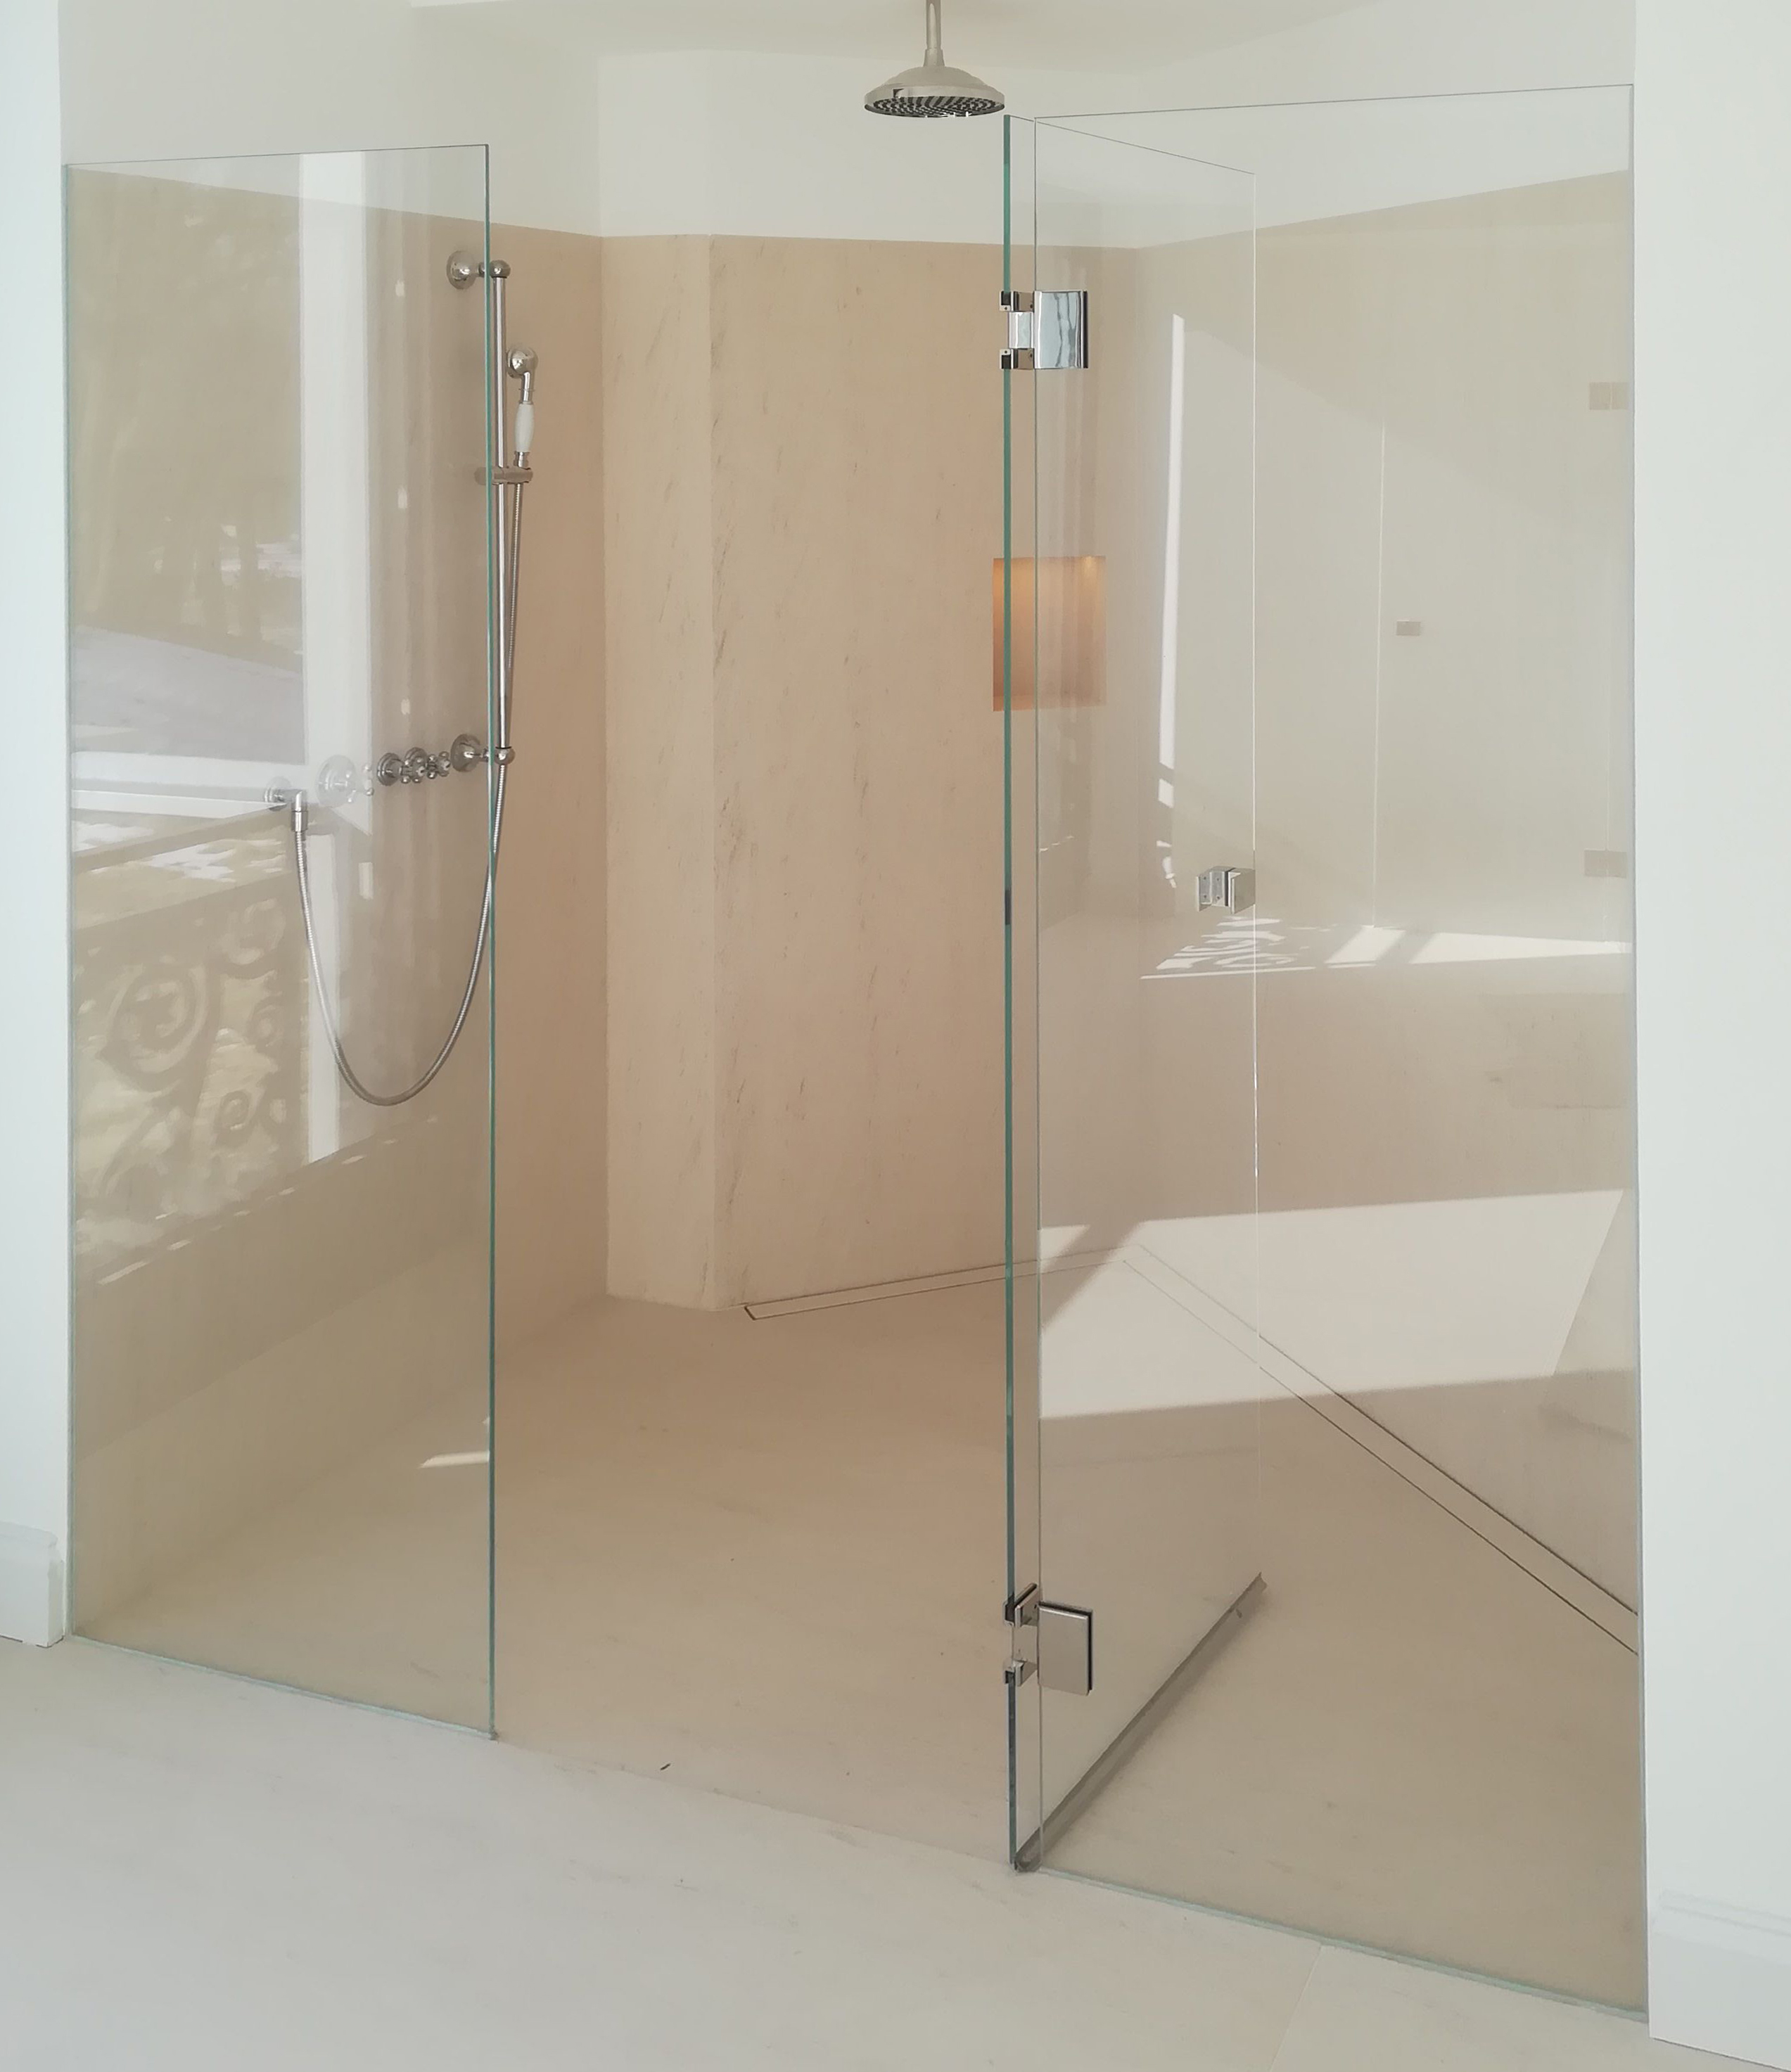 Shower partitions made of glass